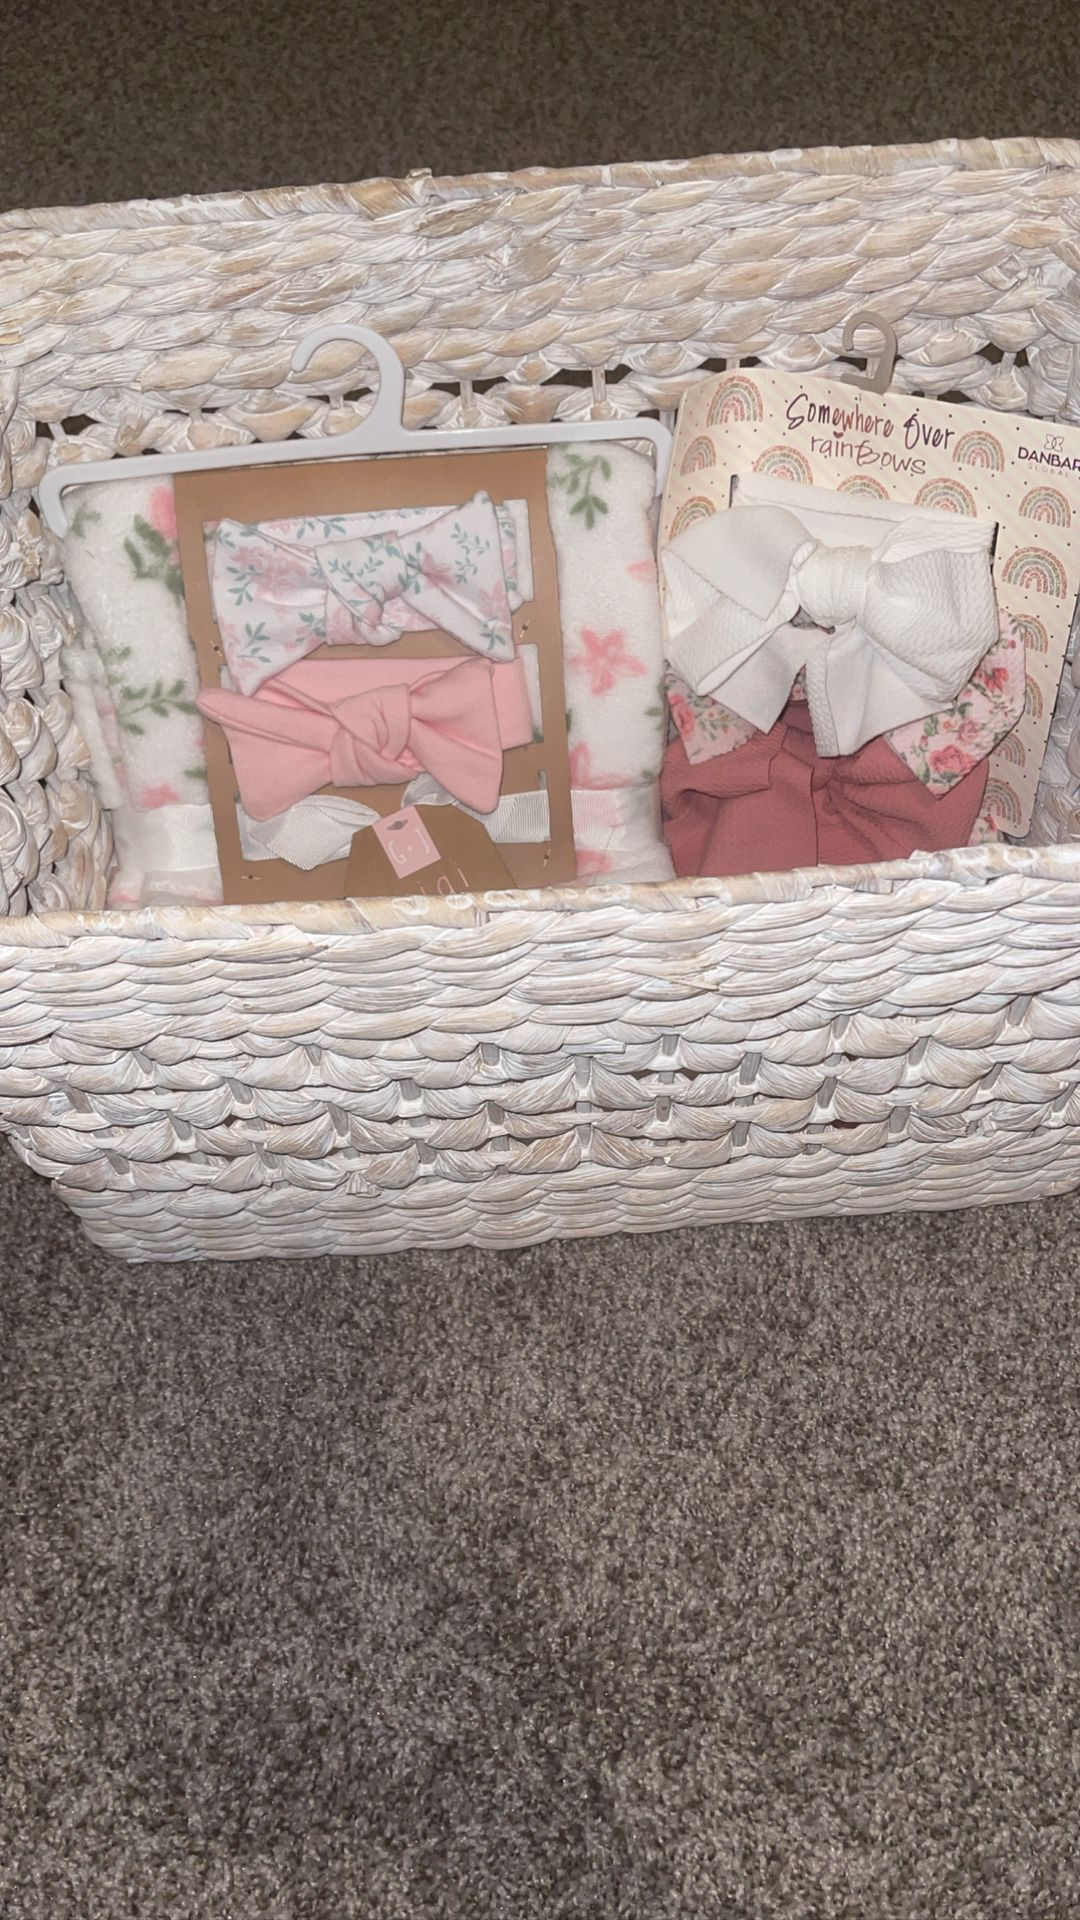 Brand New Baby GIRL Basket With Blanket & Hair bands